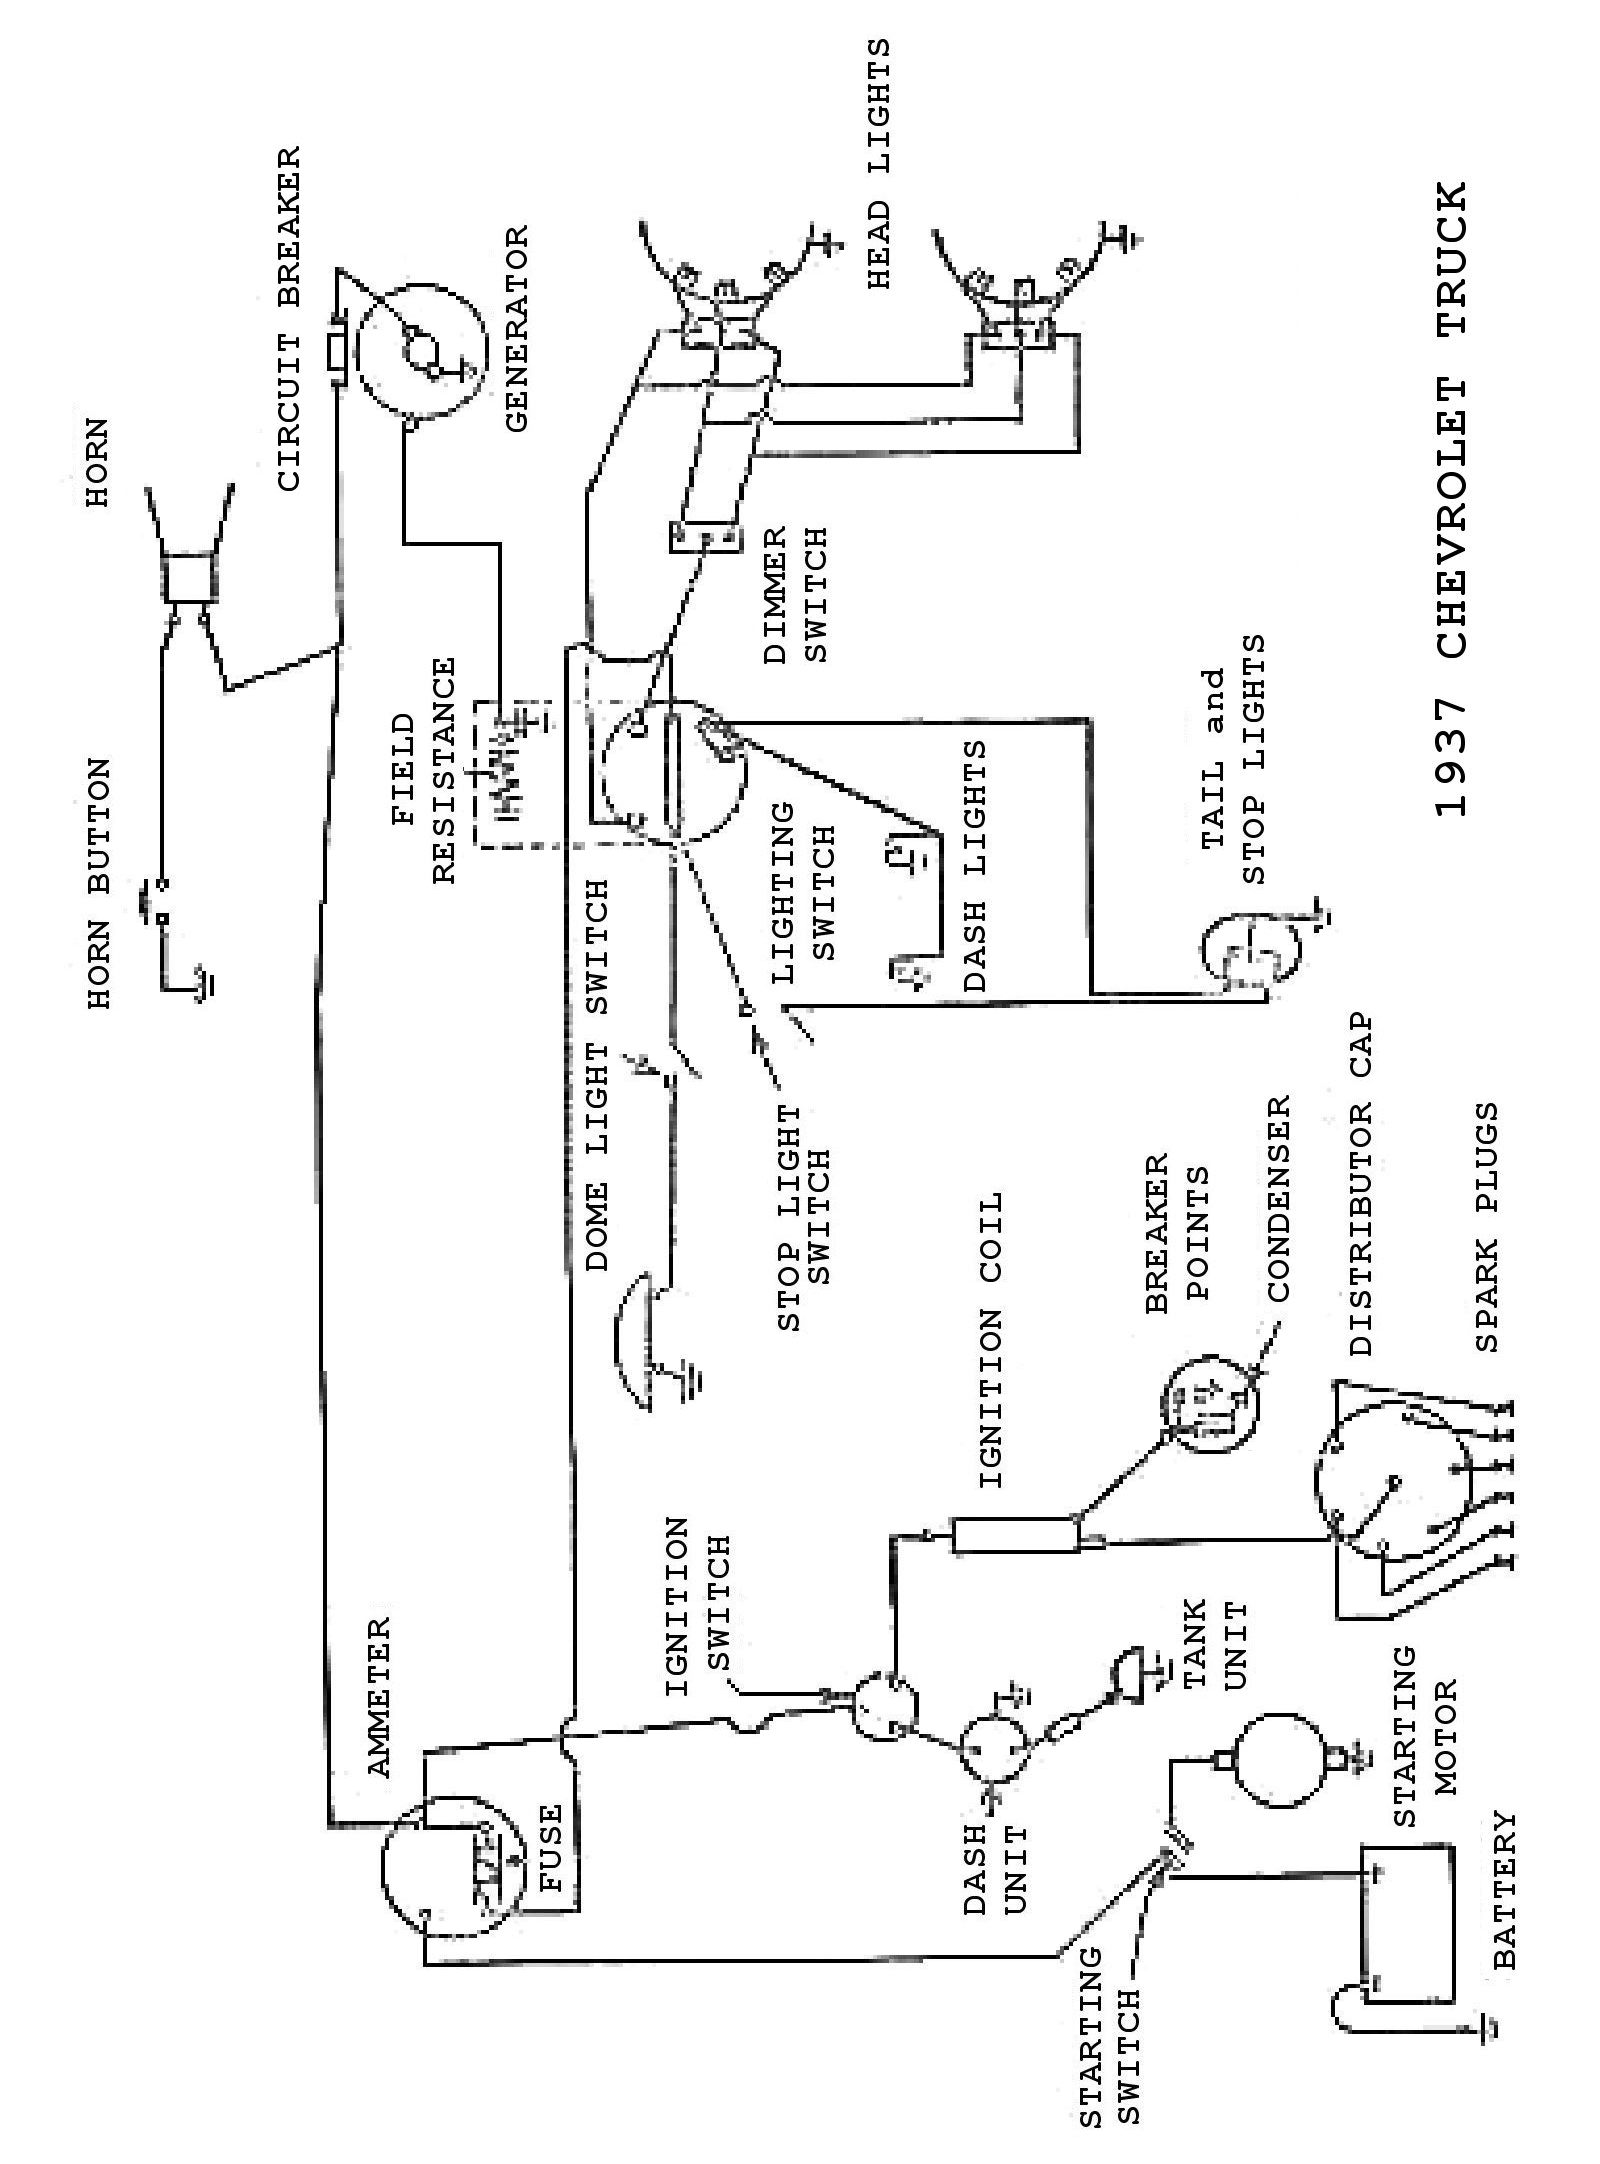 12 Volt Generator Wiring Diagram on delco remy external voltage regulator wiring diagram